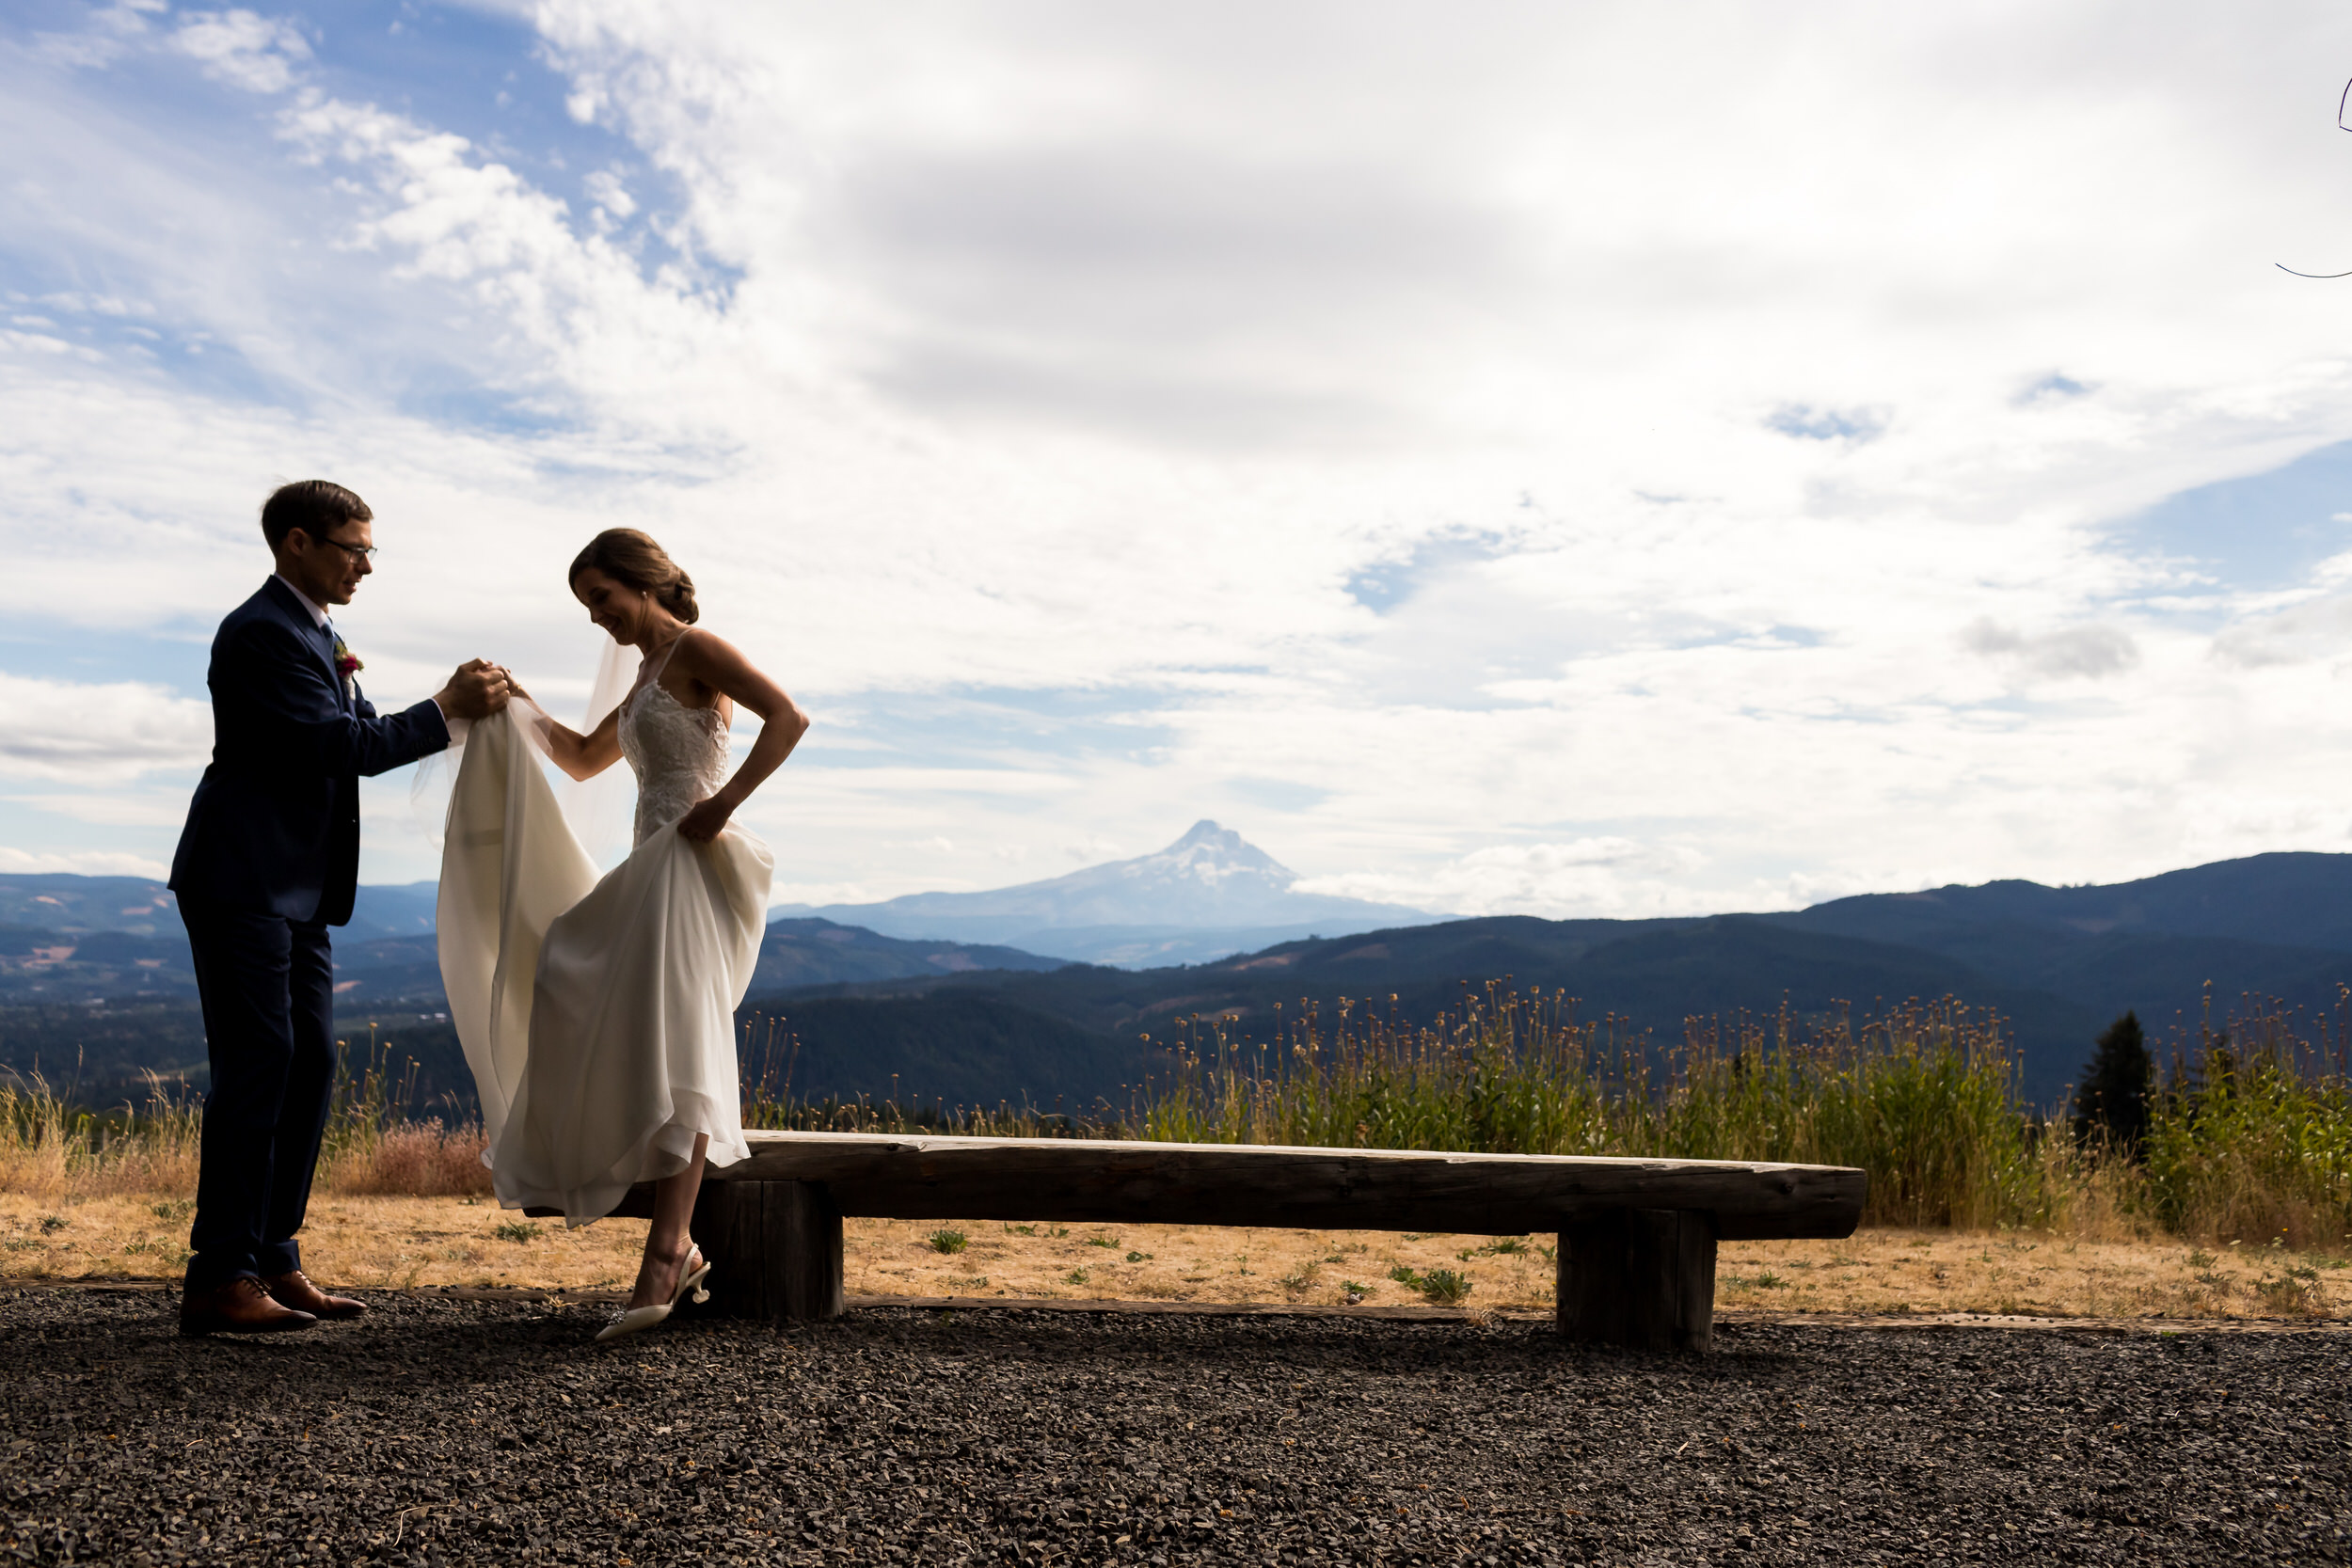 Gorge_Crest_Vineyards_Wedding_Stark_Photography_025